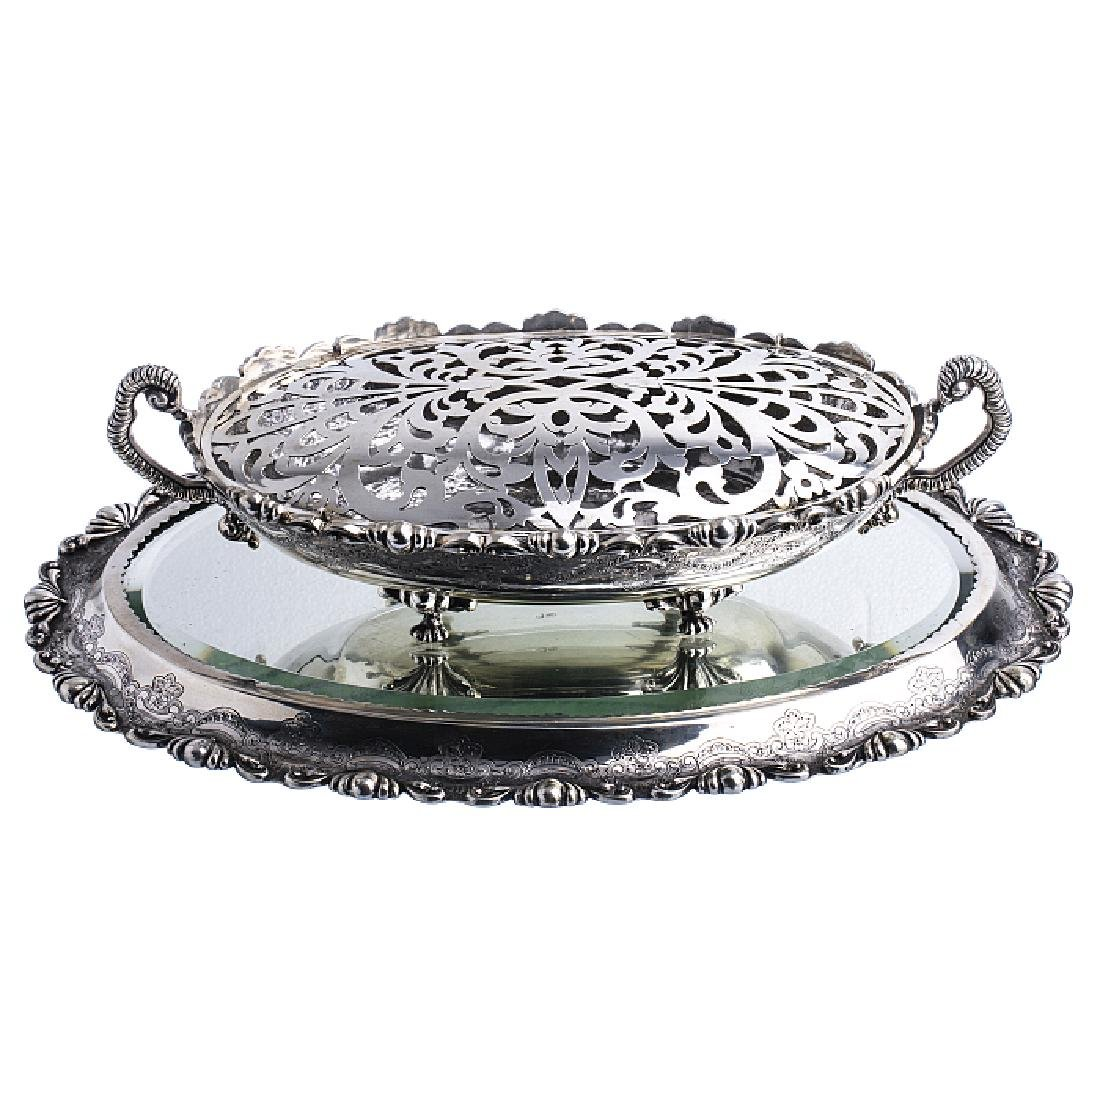 Oval flowerpot with a silver plateau